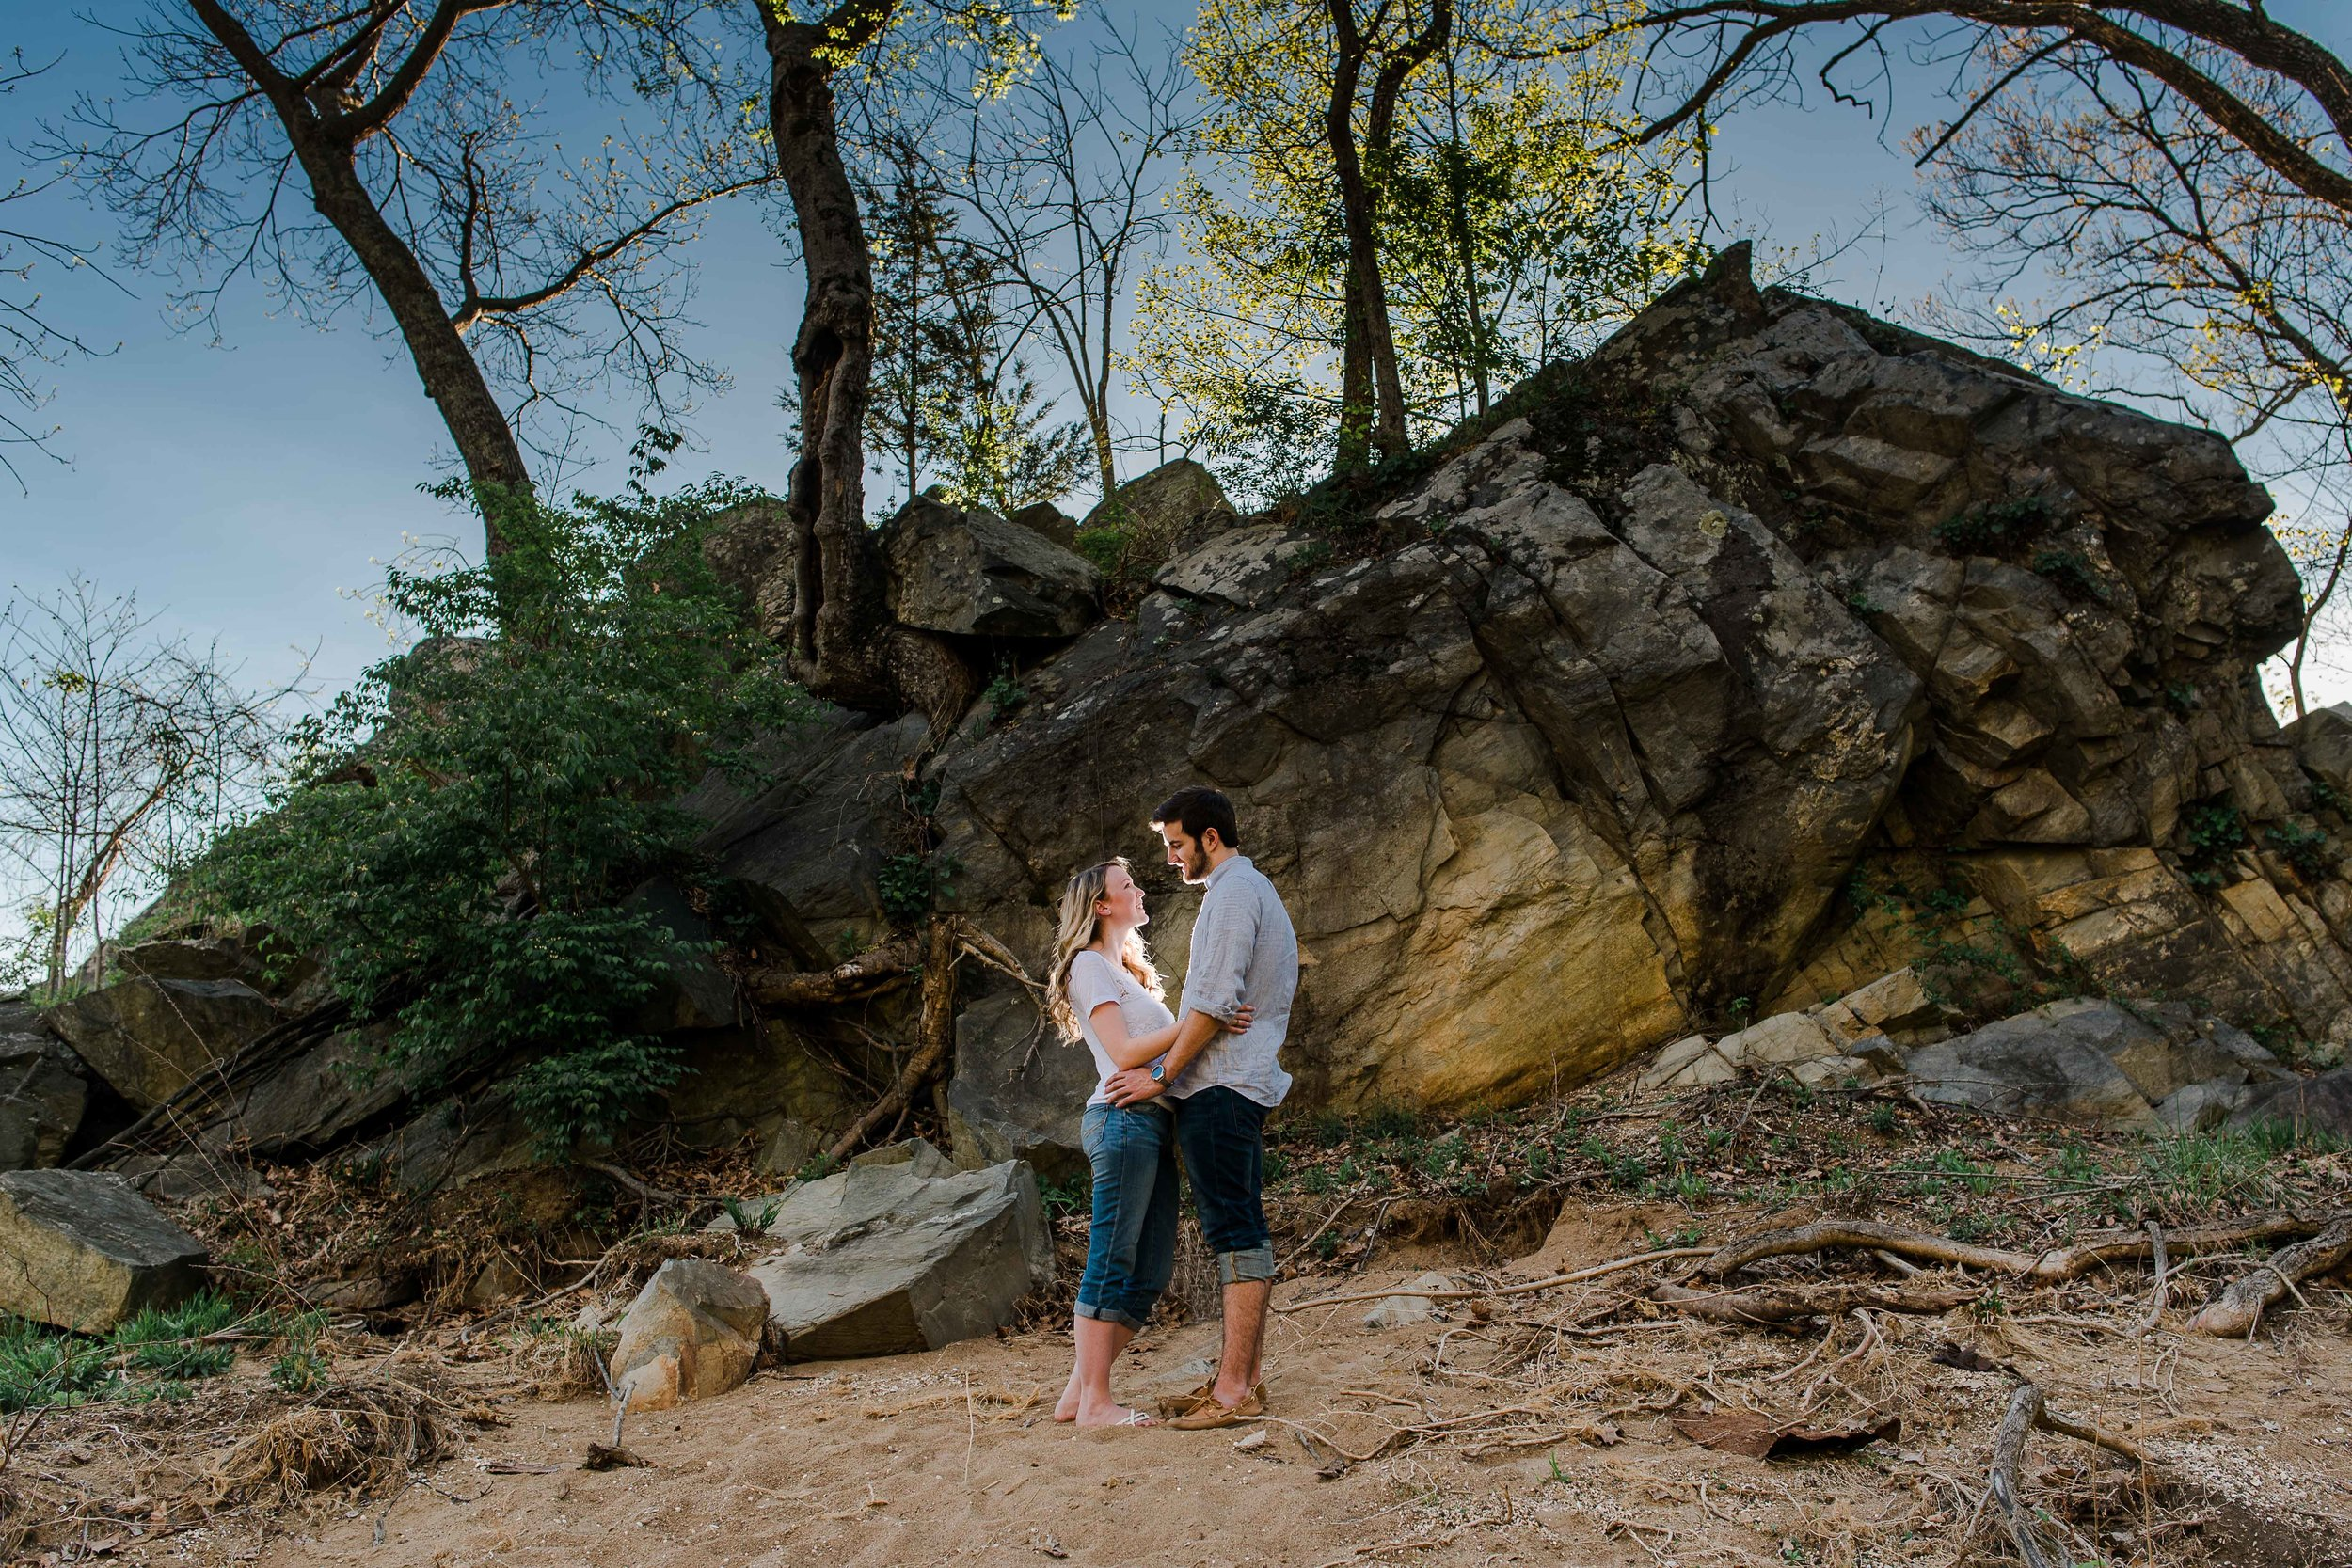 20160418-Allison&Jacob_Engagement-27025-Edit.jpg